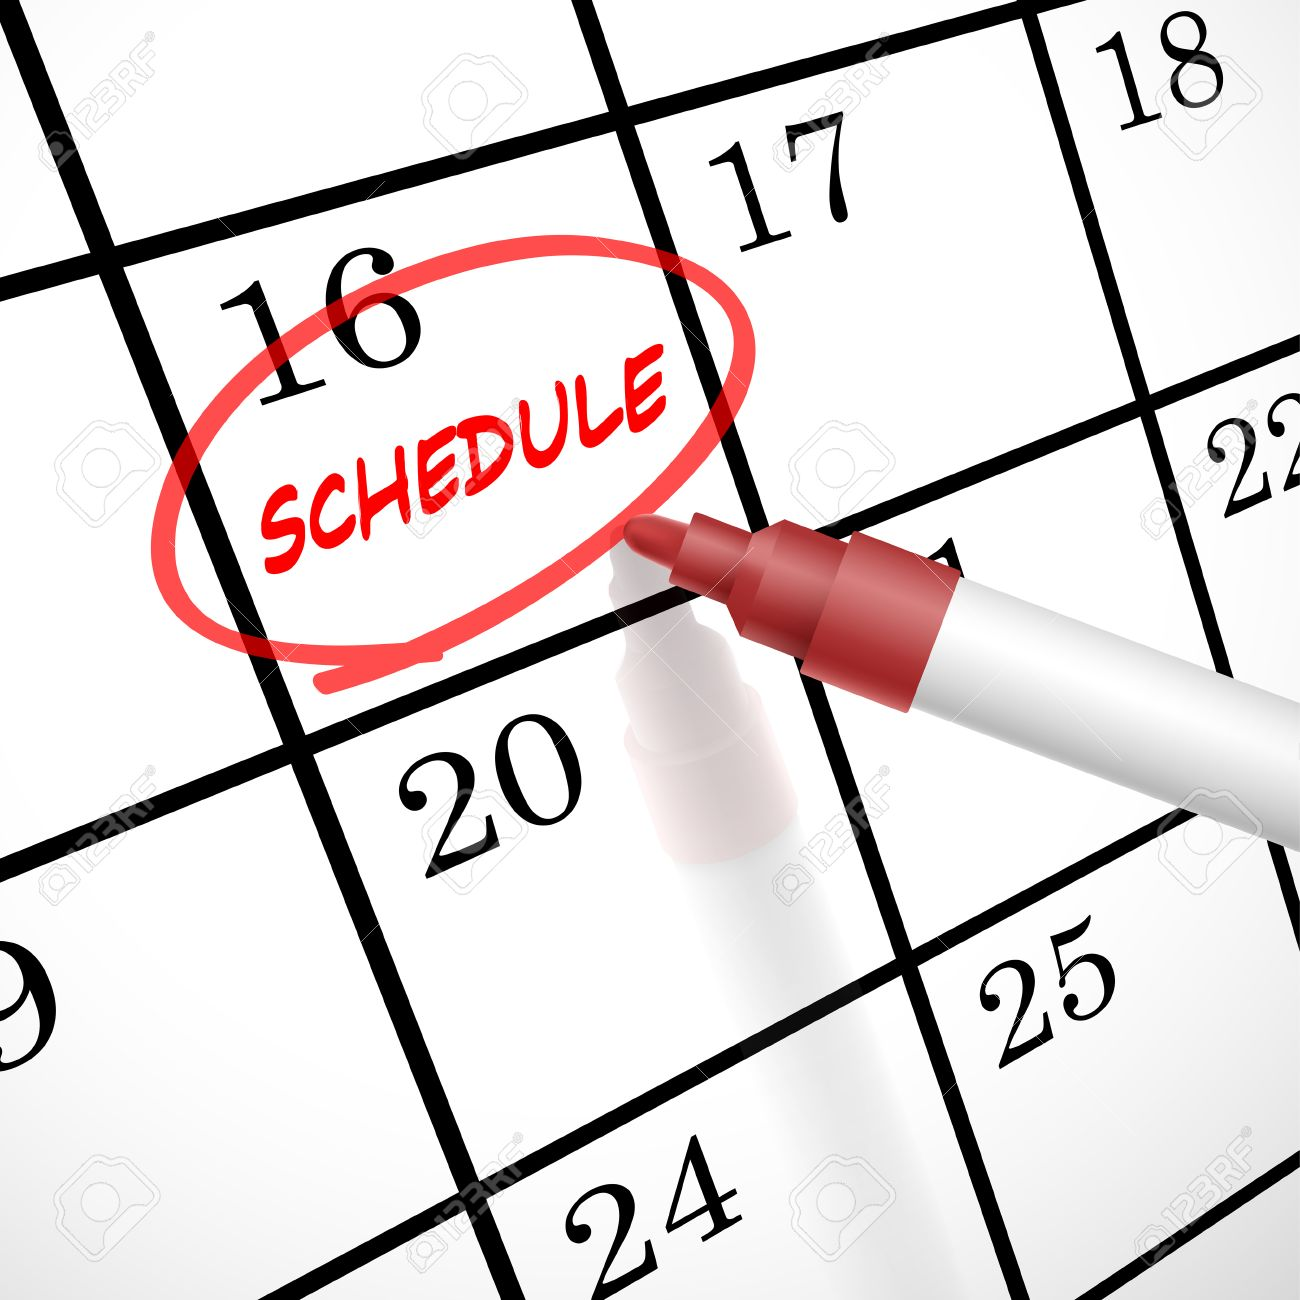 schedule word circle marked on a calendar by a red pen royalty free